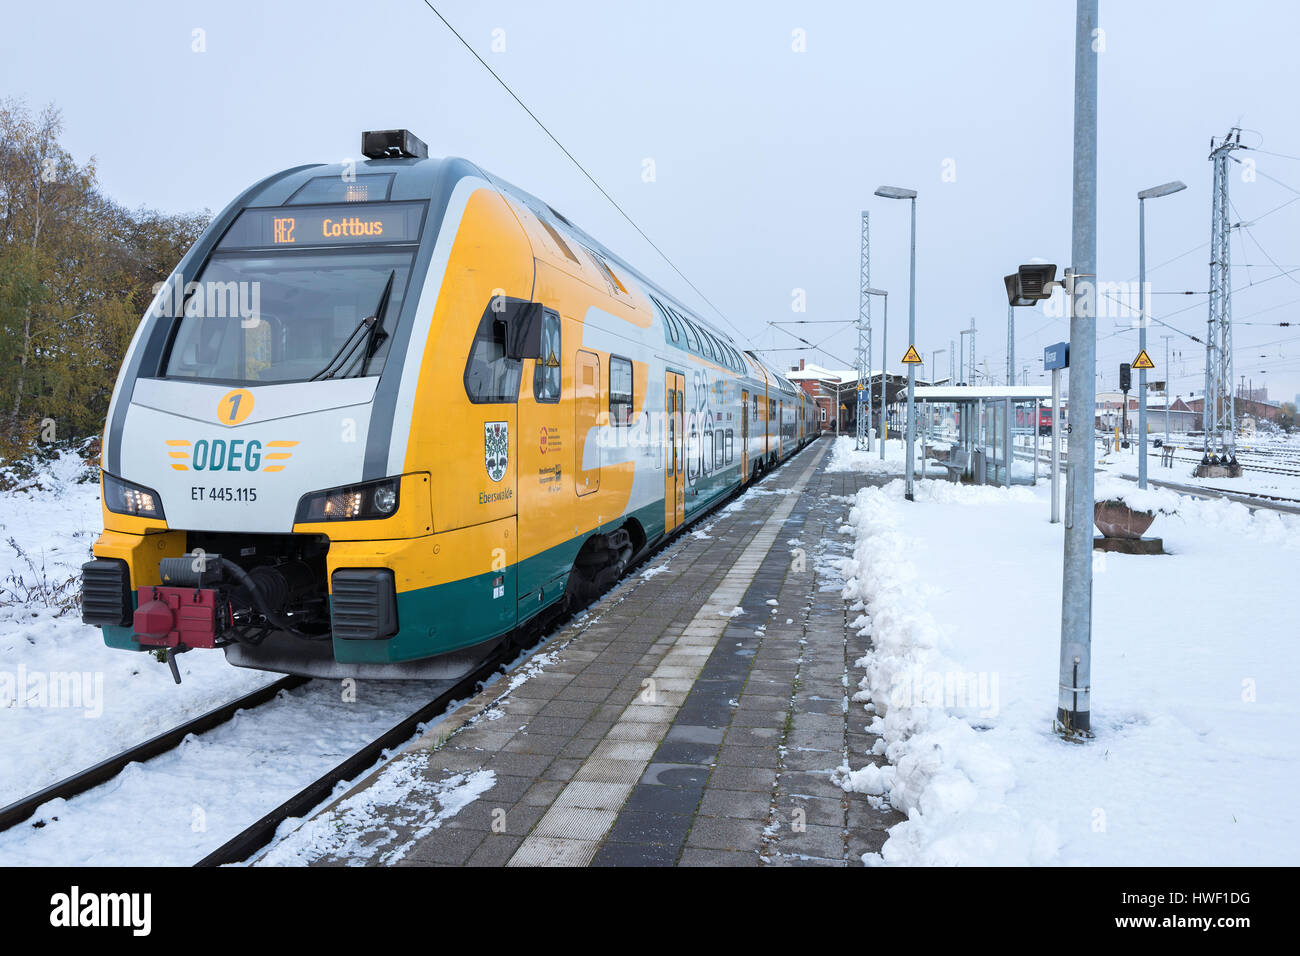 ODEG (Ostdeutsche Eisenbahn GmbH) regional train in the station of Wismar. - Stock Image